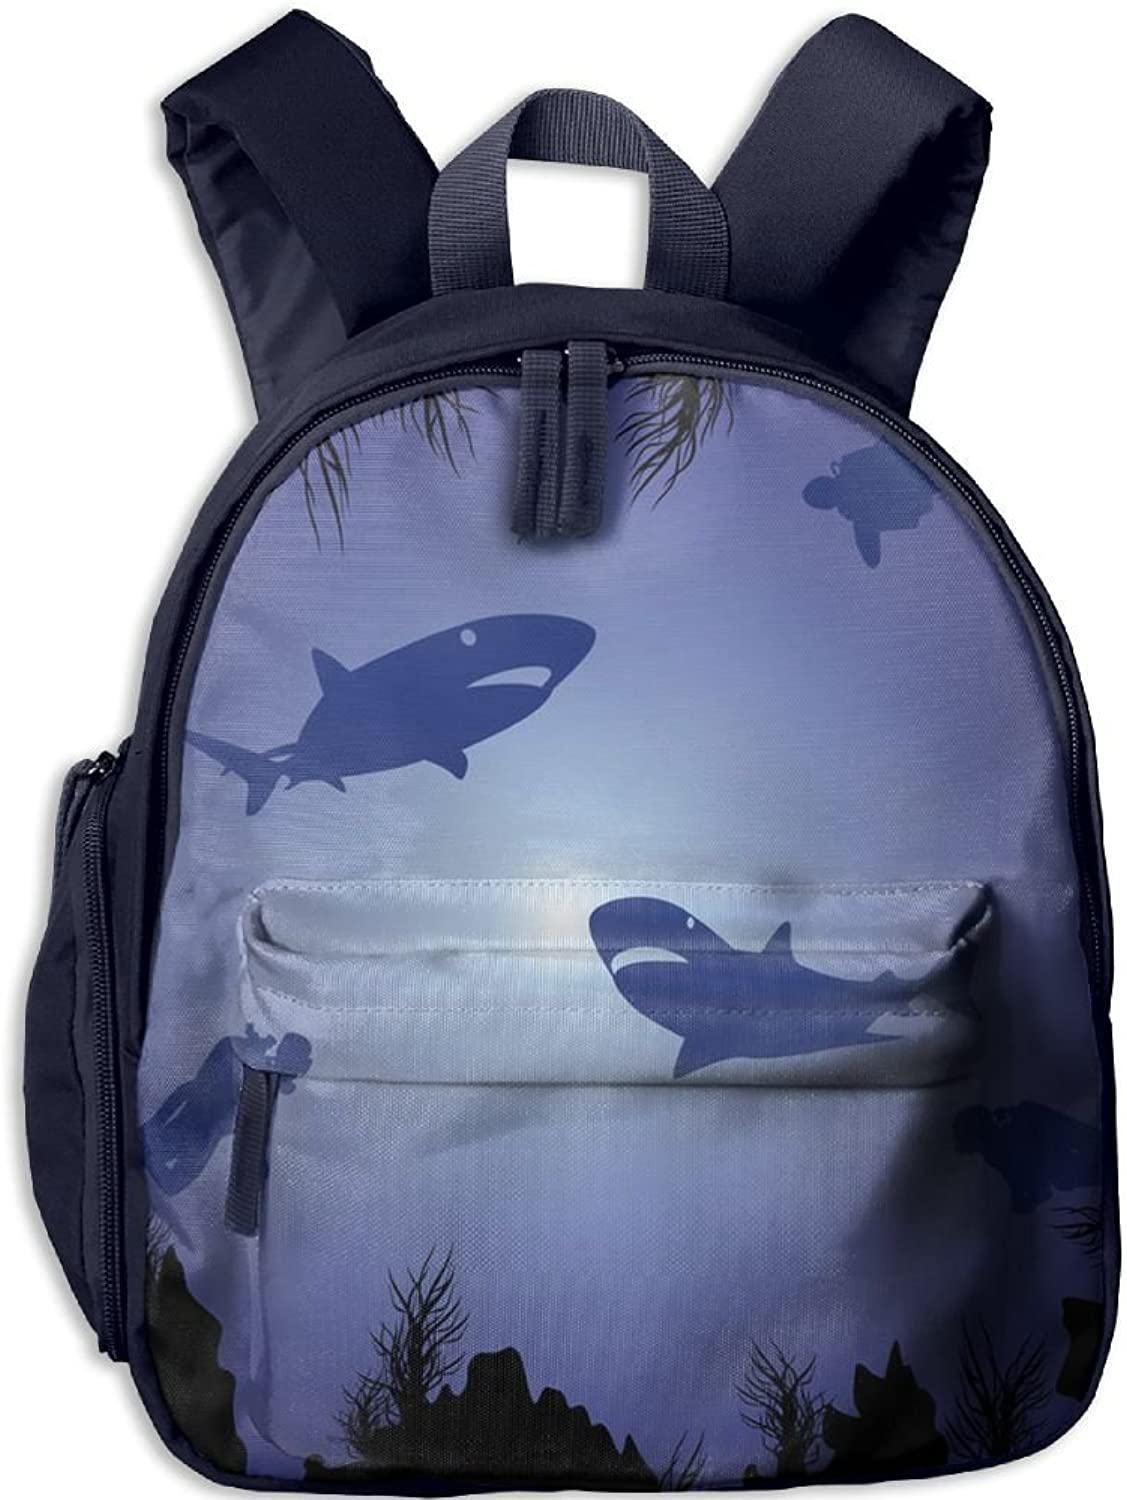 Pinta Sharks and Divers Cub Cool School Book Bag Backpacks for Girl's Boy's